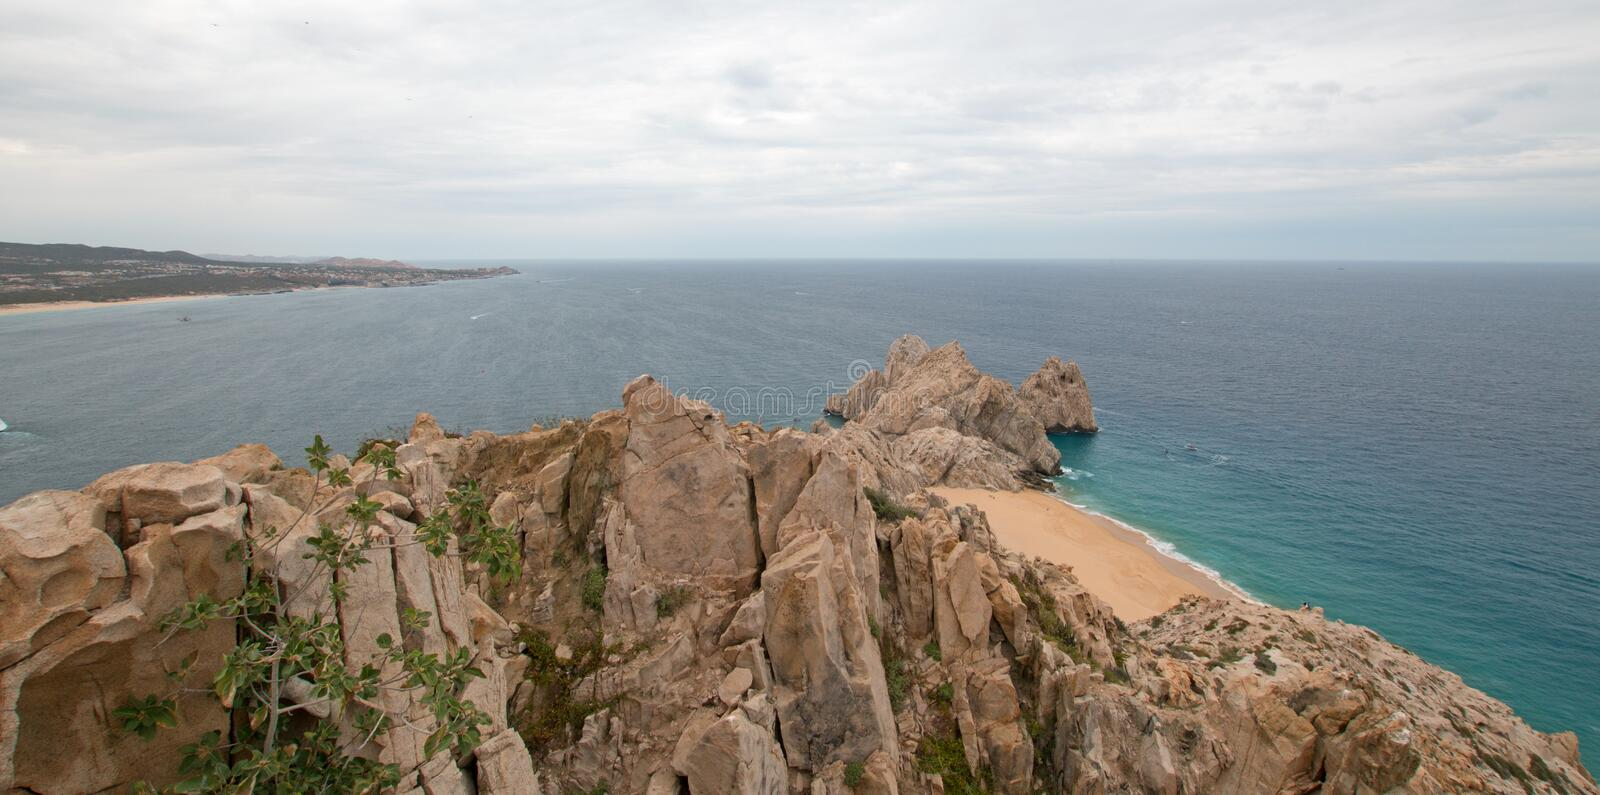 Lands End and Divorce Beach as seen from top of Mt Solmar in Cabo San Lucas Baja Mexico royalty free stock photo